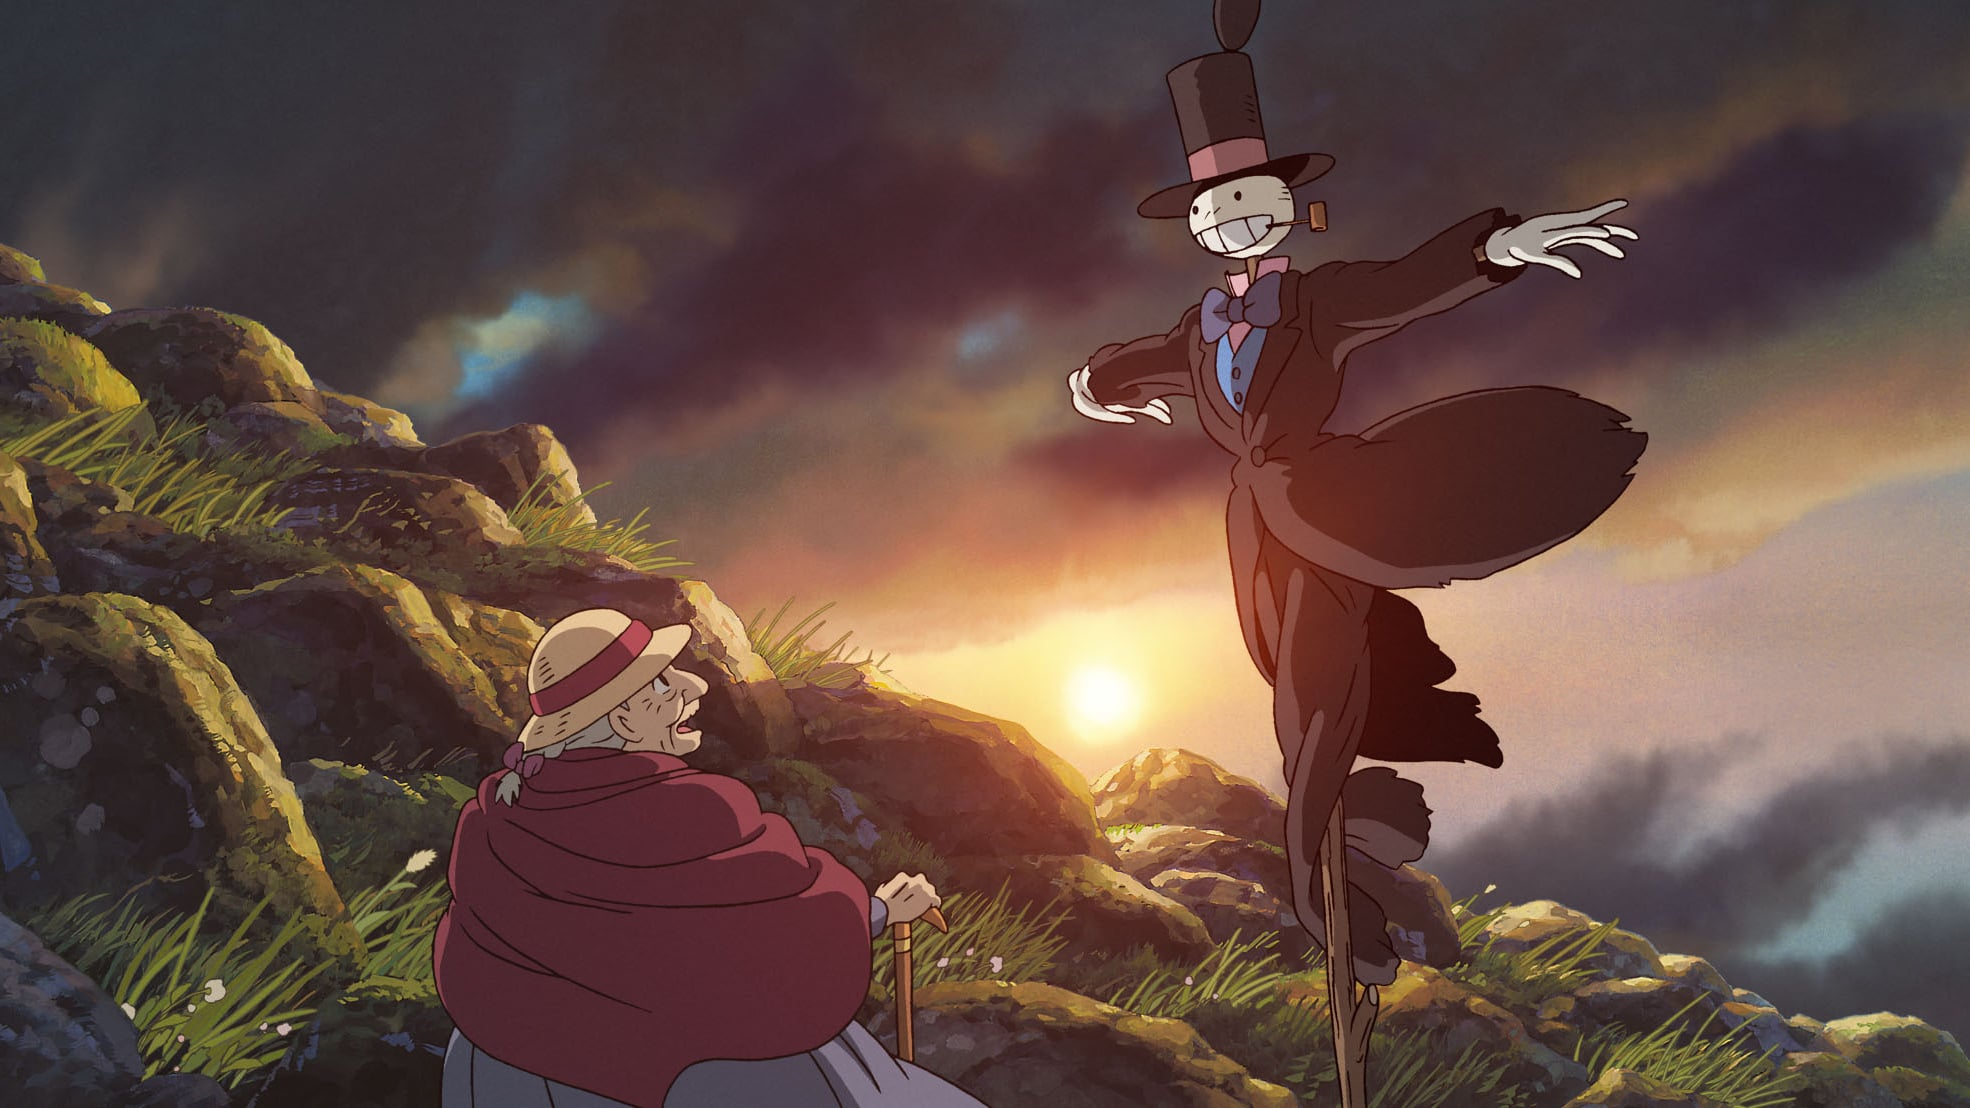 Howl S Moving Castle 2004 By Hayao Miyazaki Japanese Film Reviews